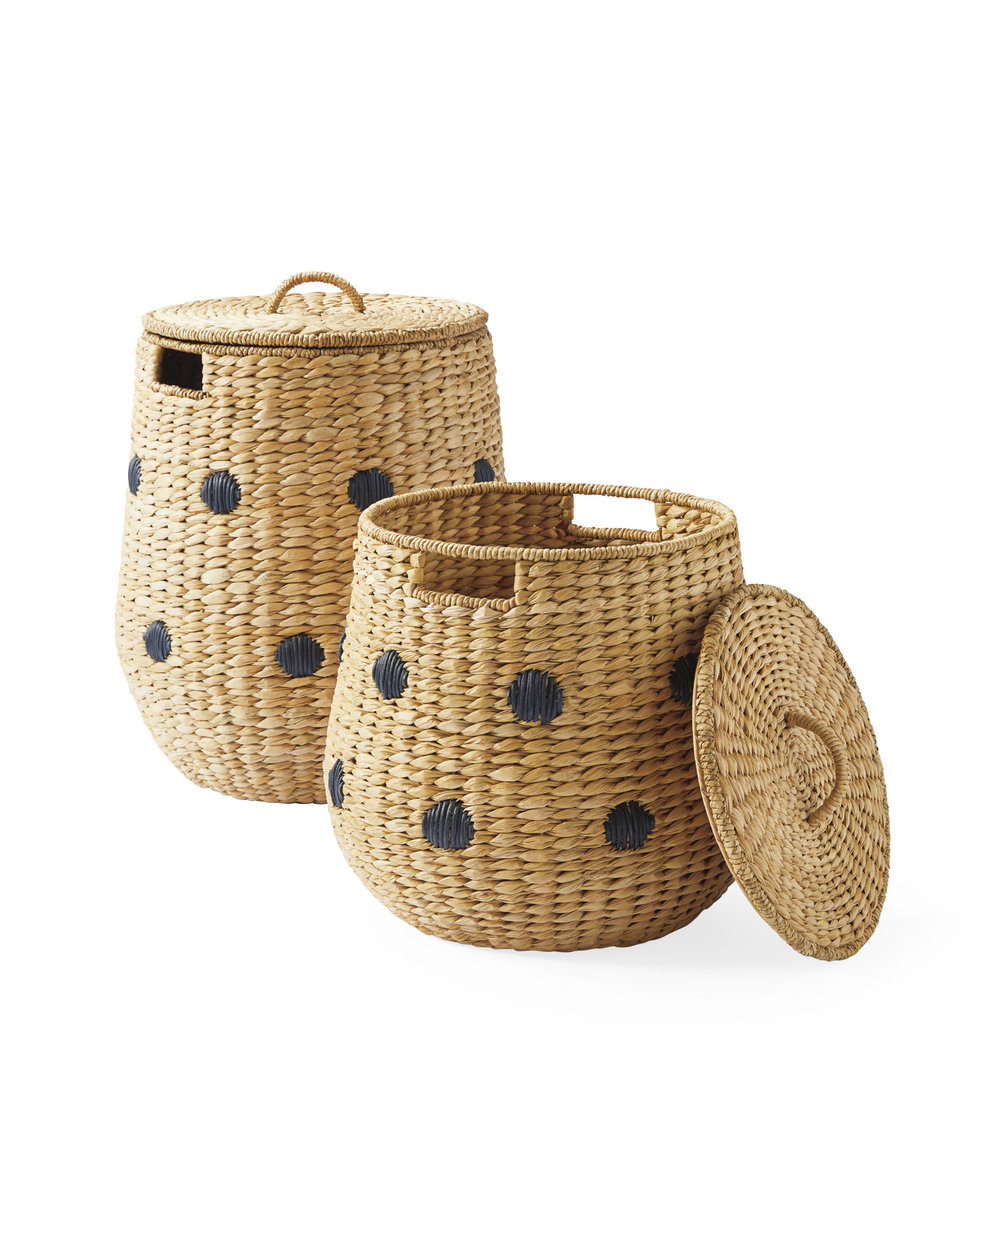 Storage_Dot_Basket_Natural_Navy_Group_RESHOOT_MV_0641_Crop_SH.jpg